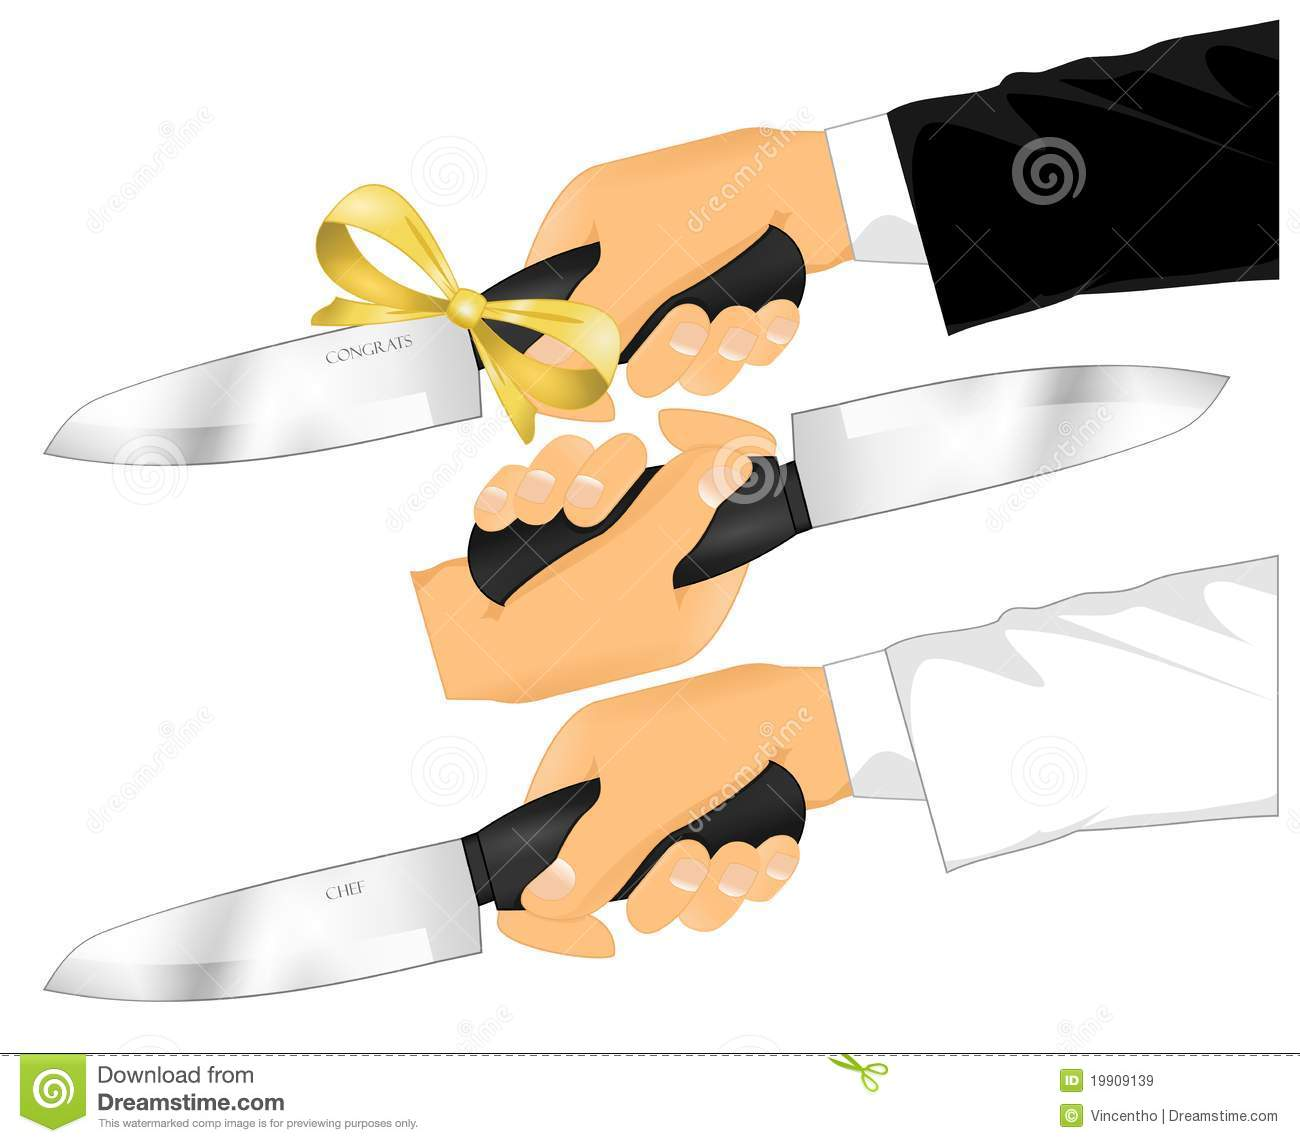 Cake Knife Clipart : Celebration Hand Holding Knife Cutting Clipart Royalty ...